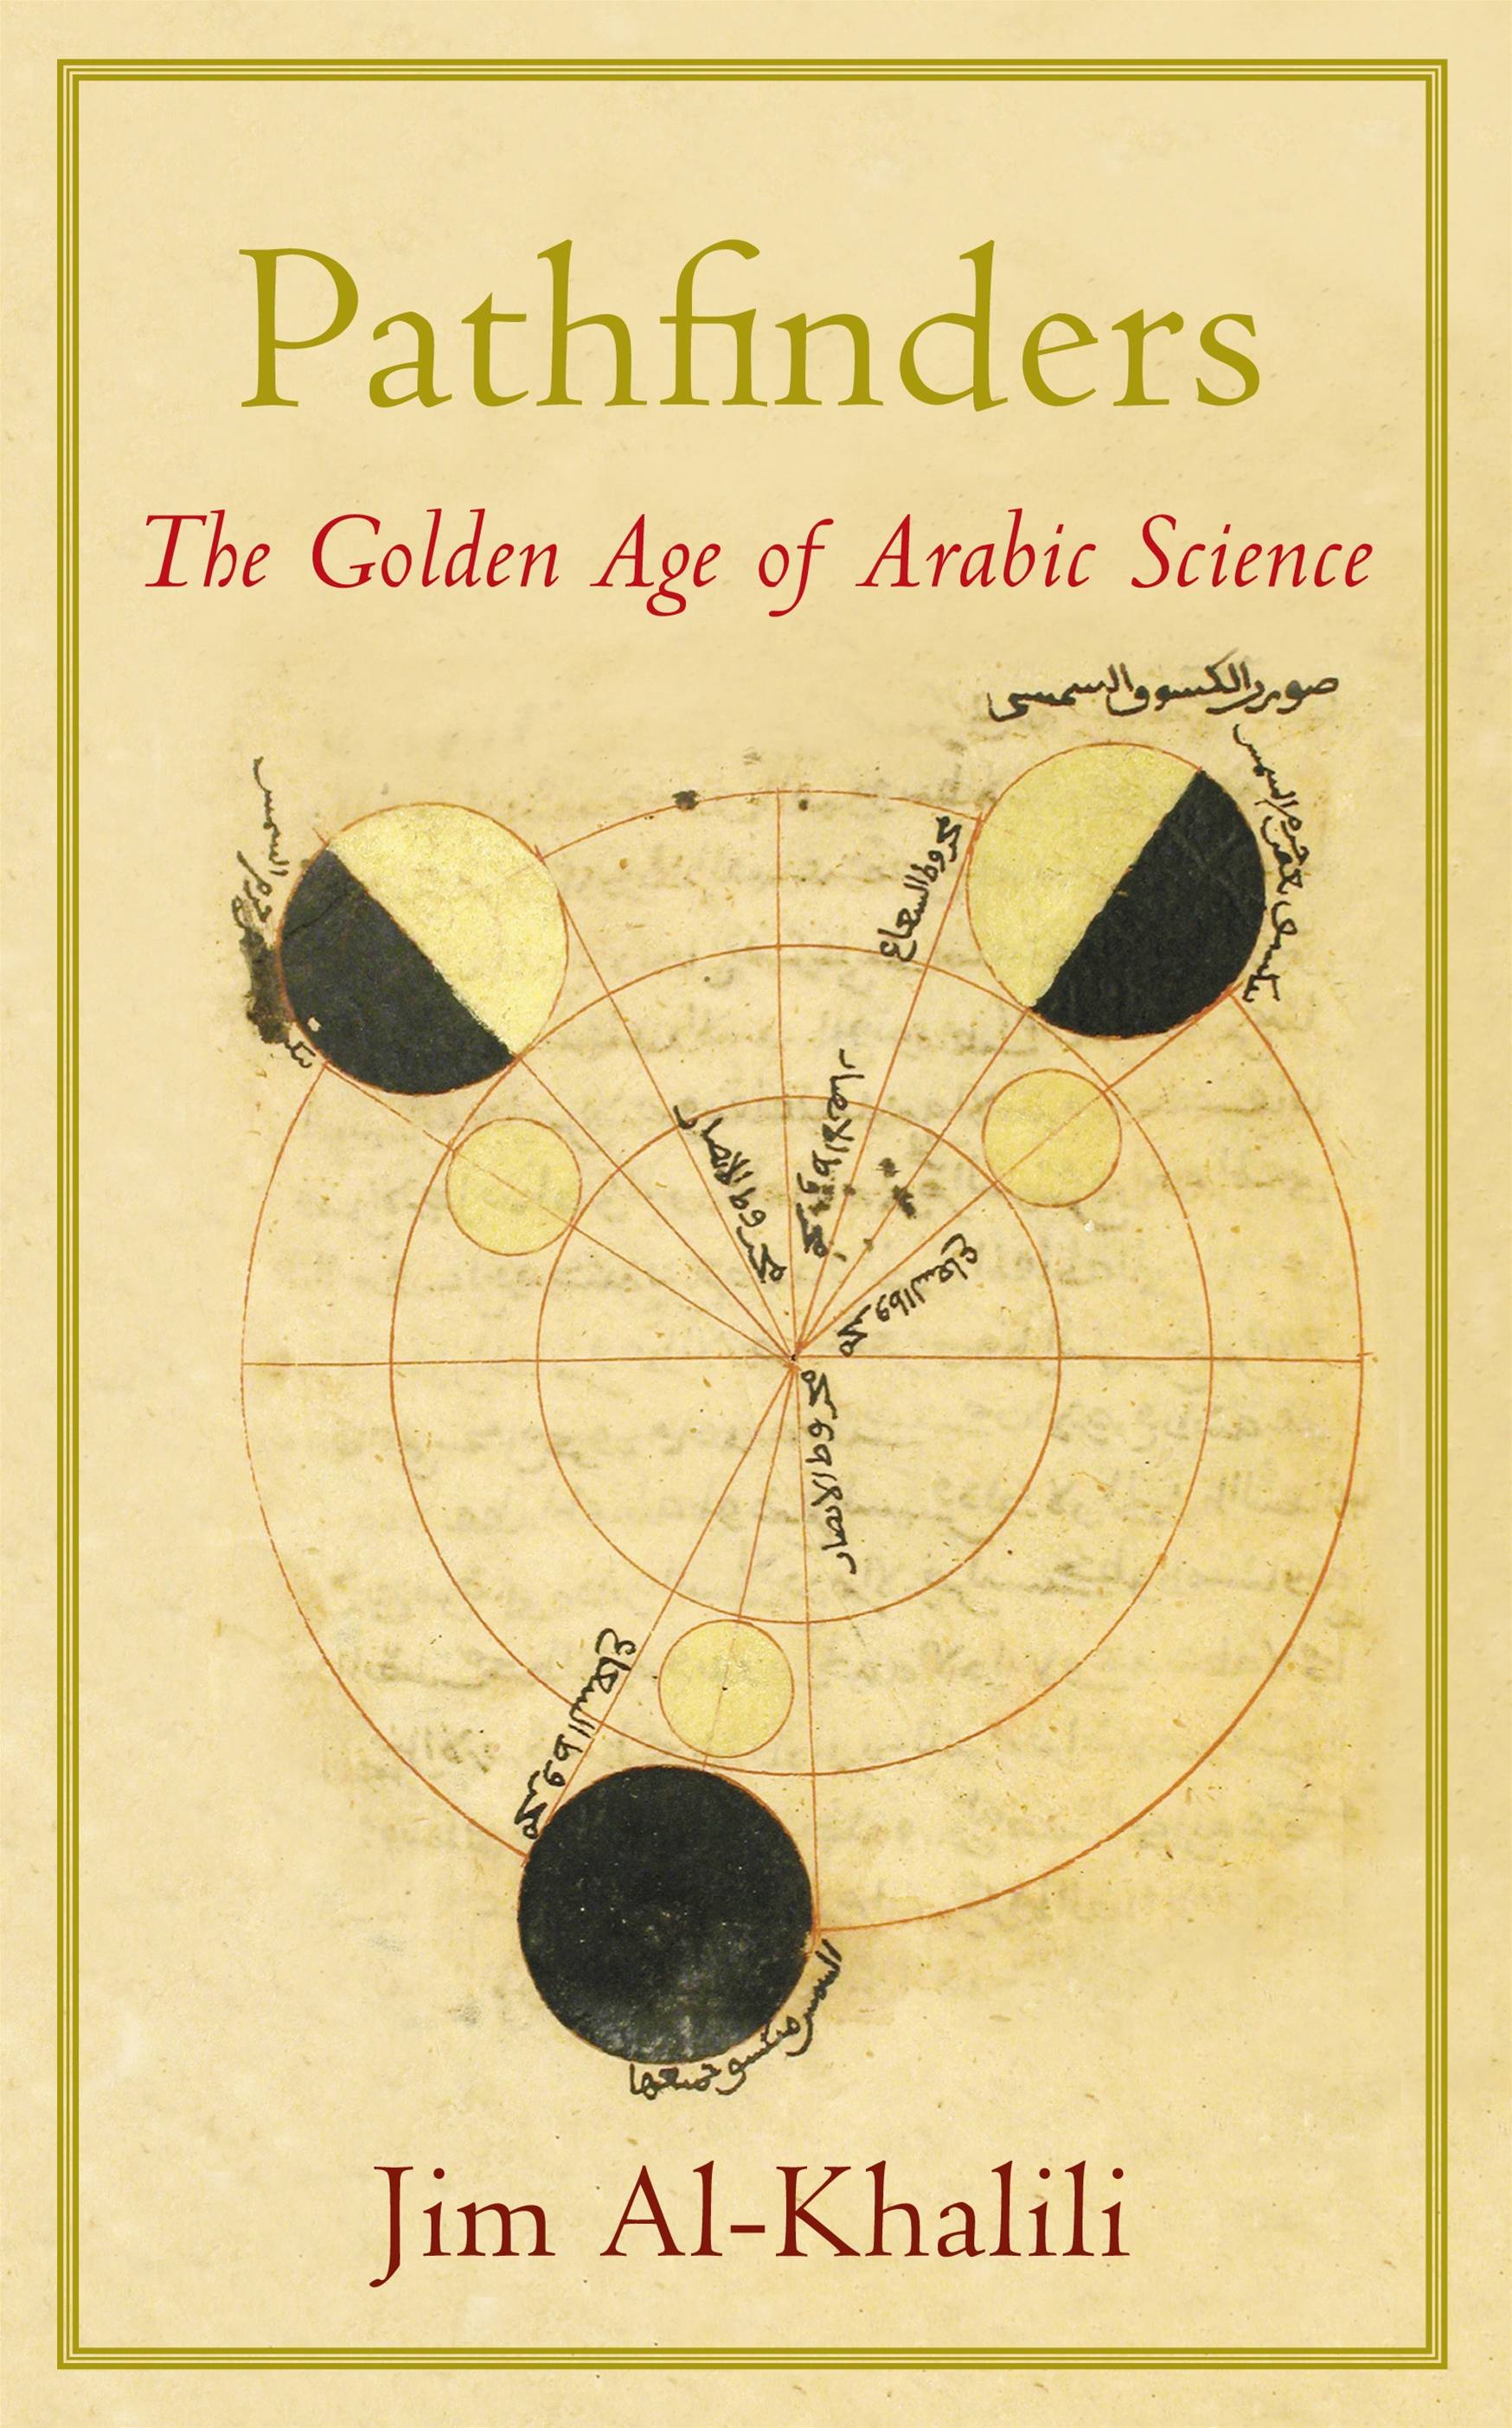 Pathfinders The Golden Age of Arabic Science